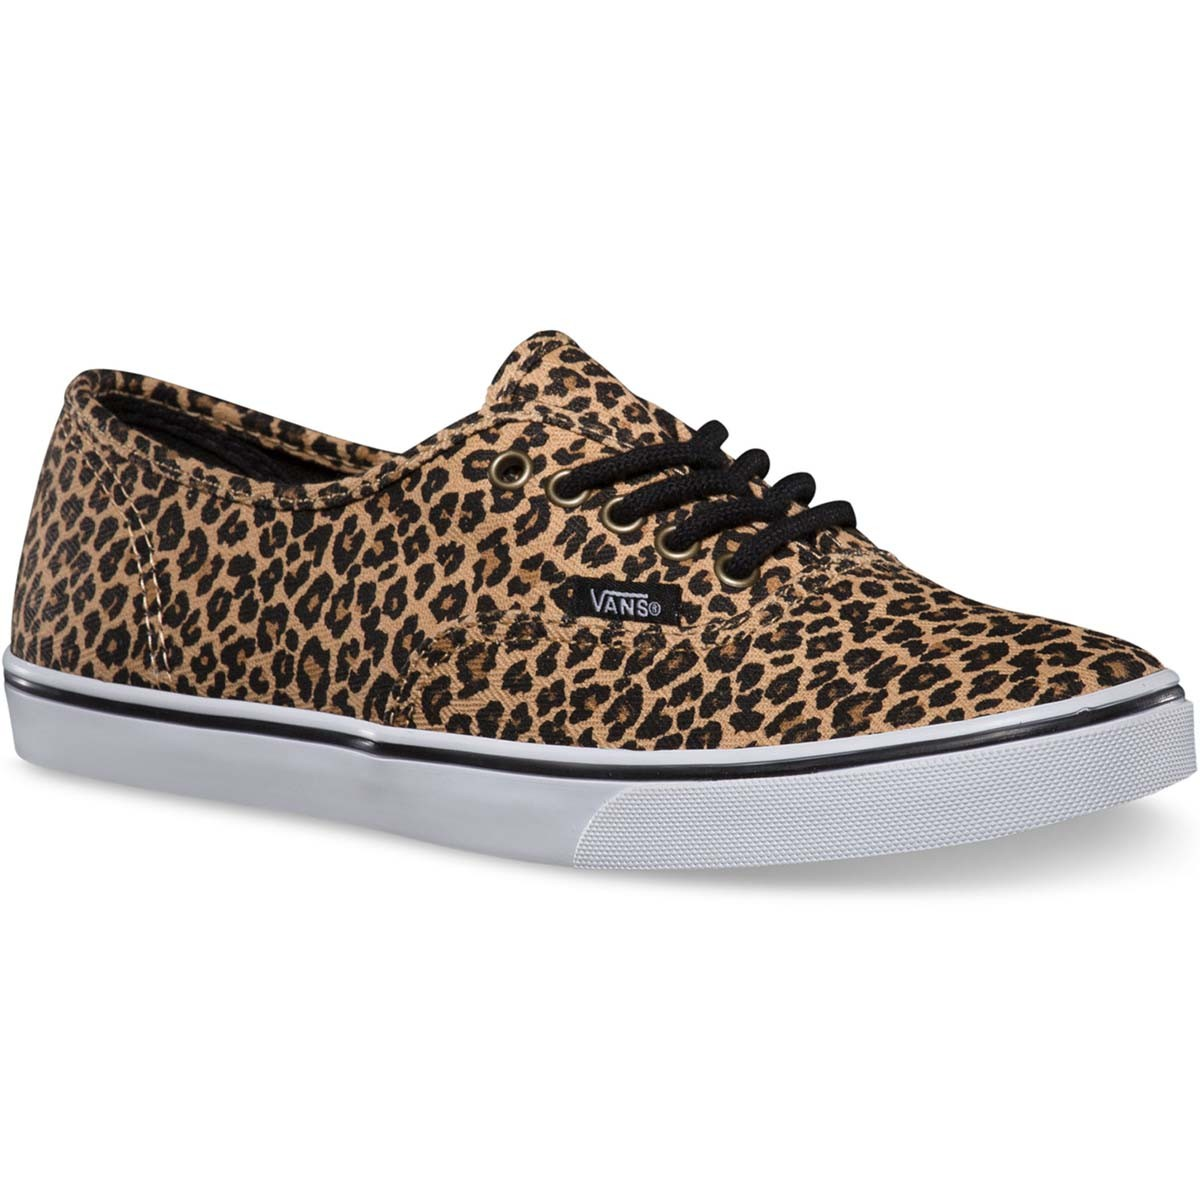 Vans Authentic Lo Pro Leopard Womens Shoes - Herringbone 7.5